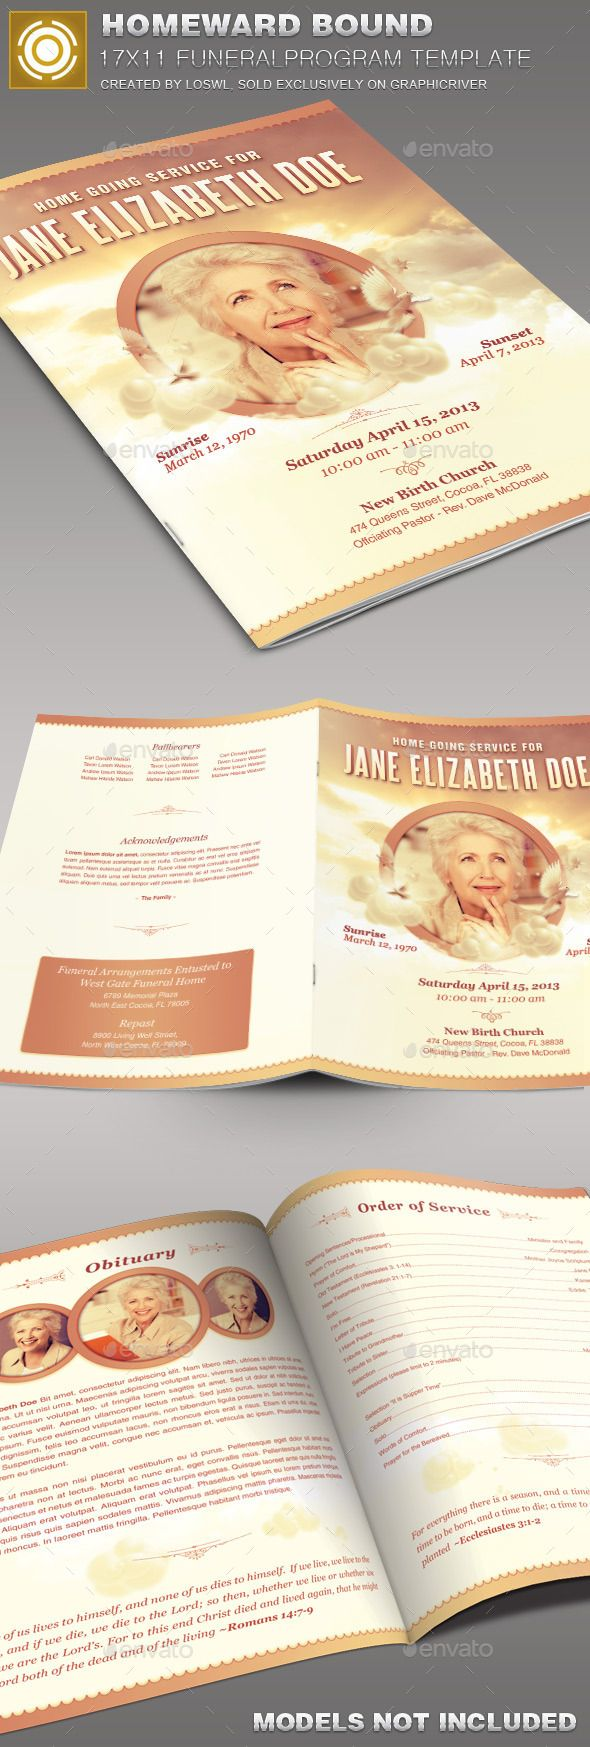 Homeward Bound Funeral Program Template   Brochures Template